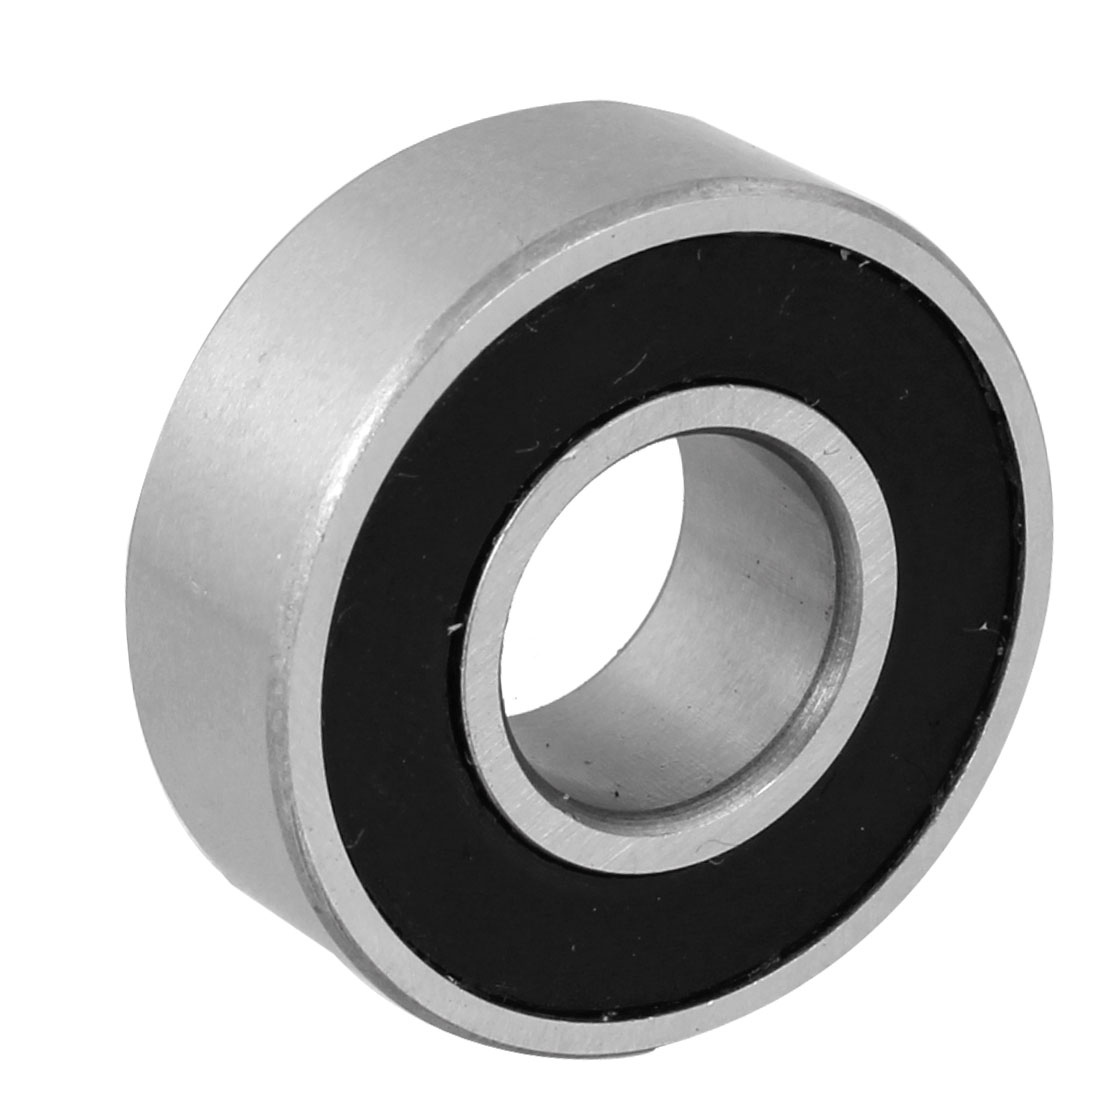 6200 Metal Deep Groove Ball Bearings 30mm x 10mm x 9mm